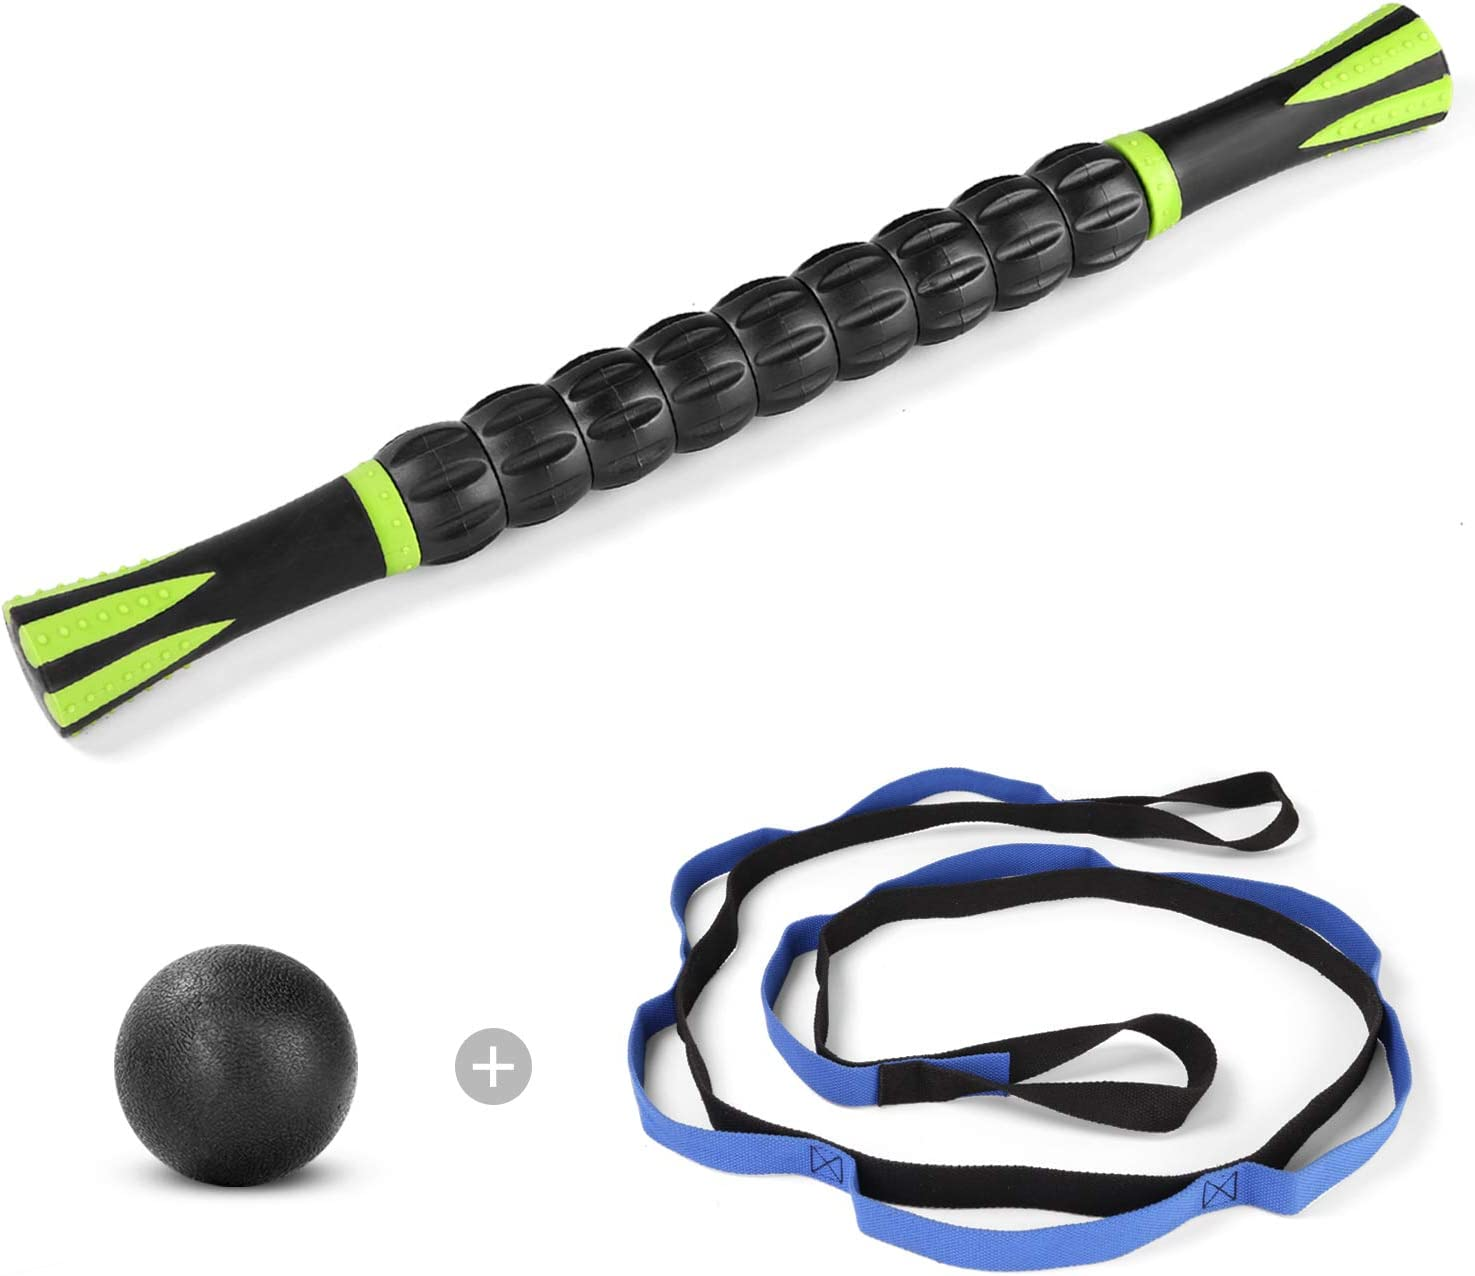 Odoland 45CM Muscle Roller Stick Set with Massage Ball and Stretching Strap Portable Muscle Roller Tools for Muscle Massage Physical Therapy Body Recovery and Office Back Massage